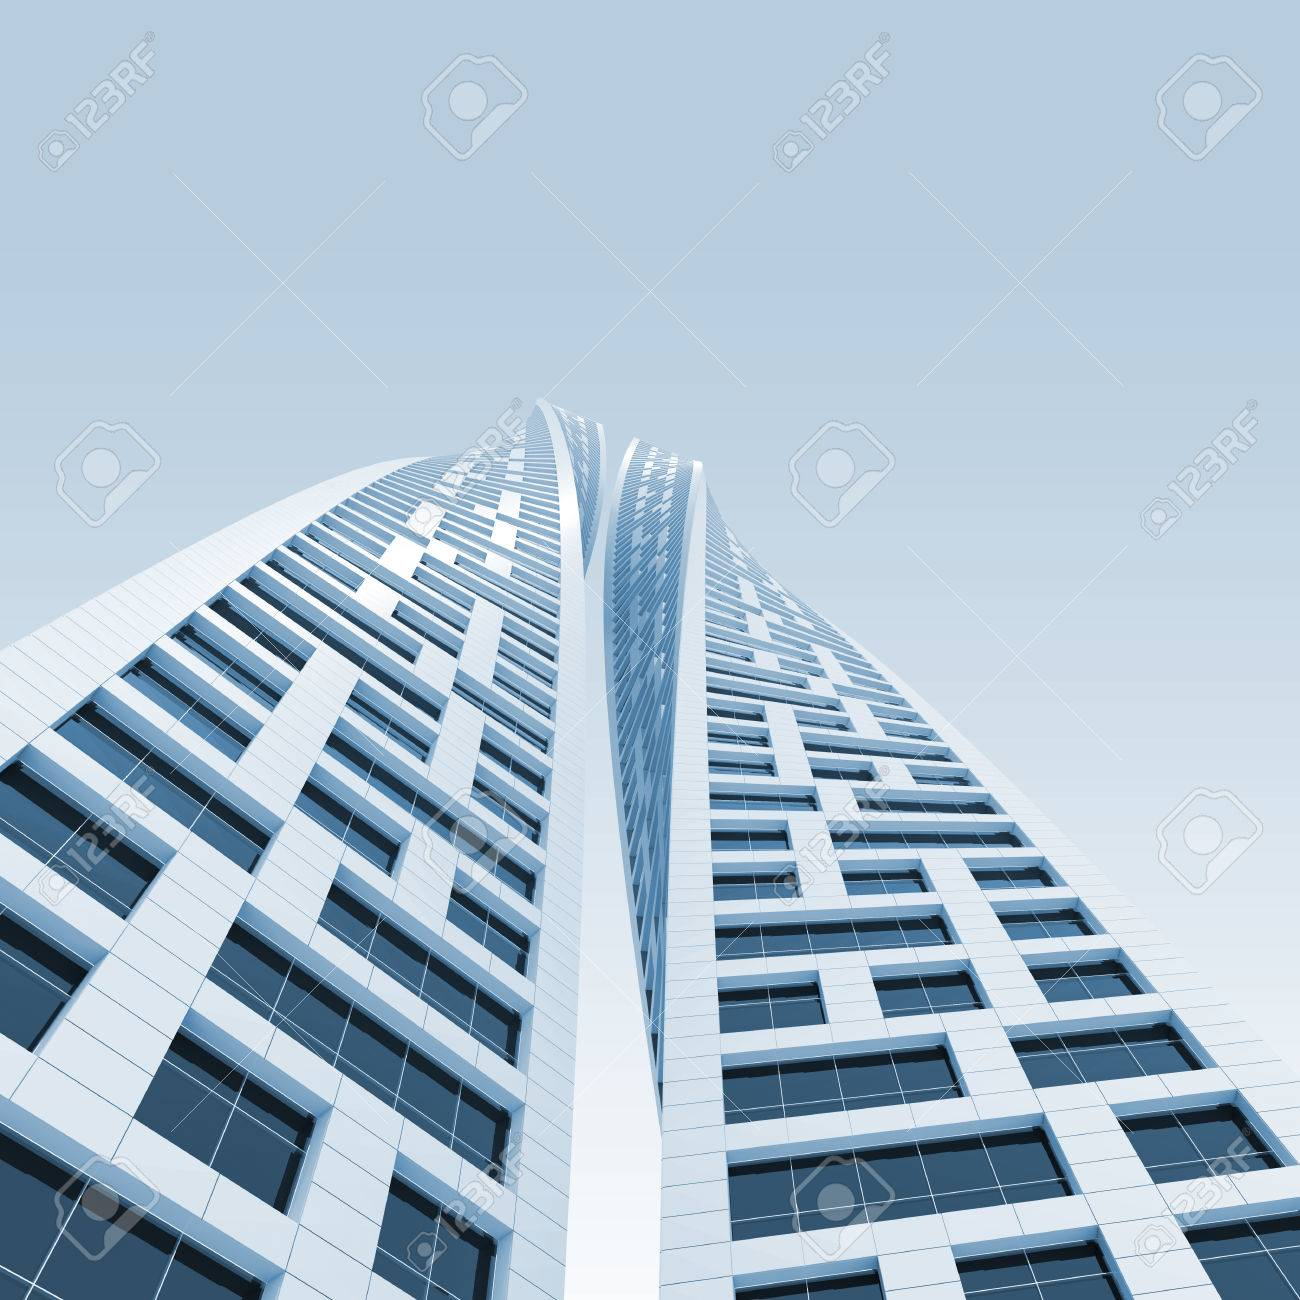 Modern Architecture Render abstract modern architecture. two twisted towers perspective